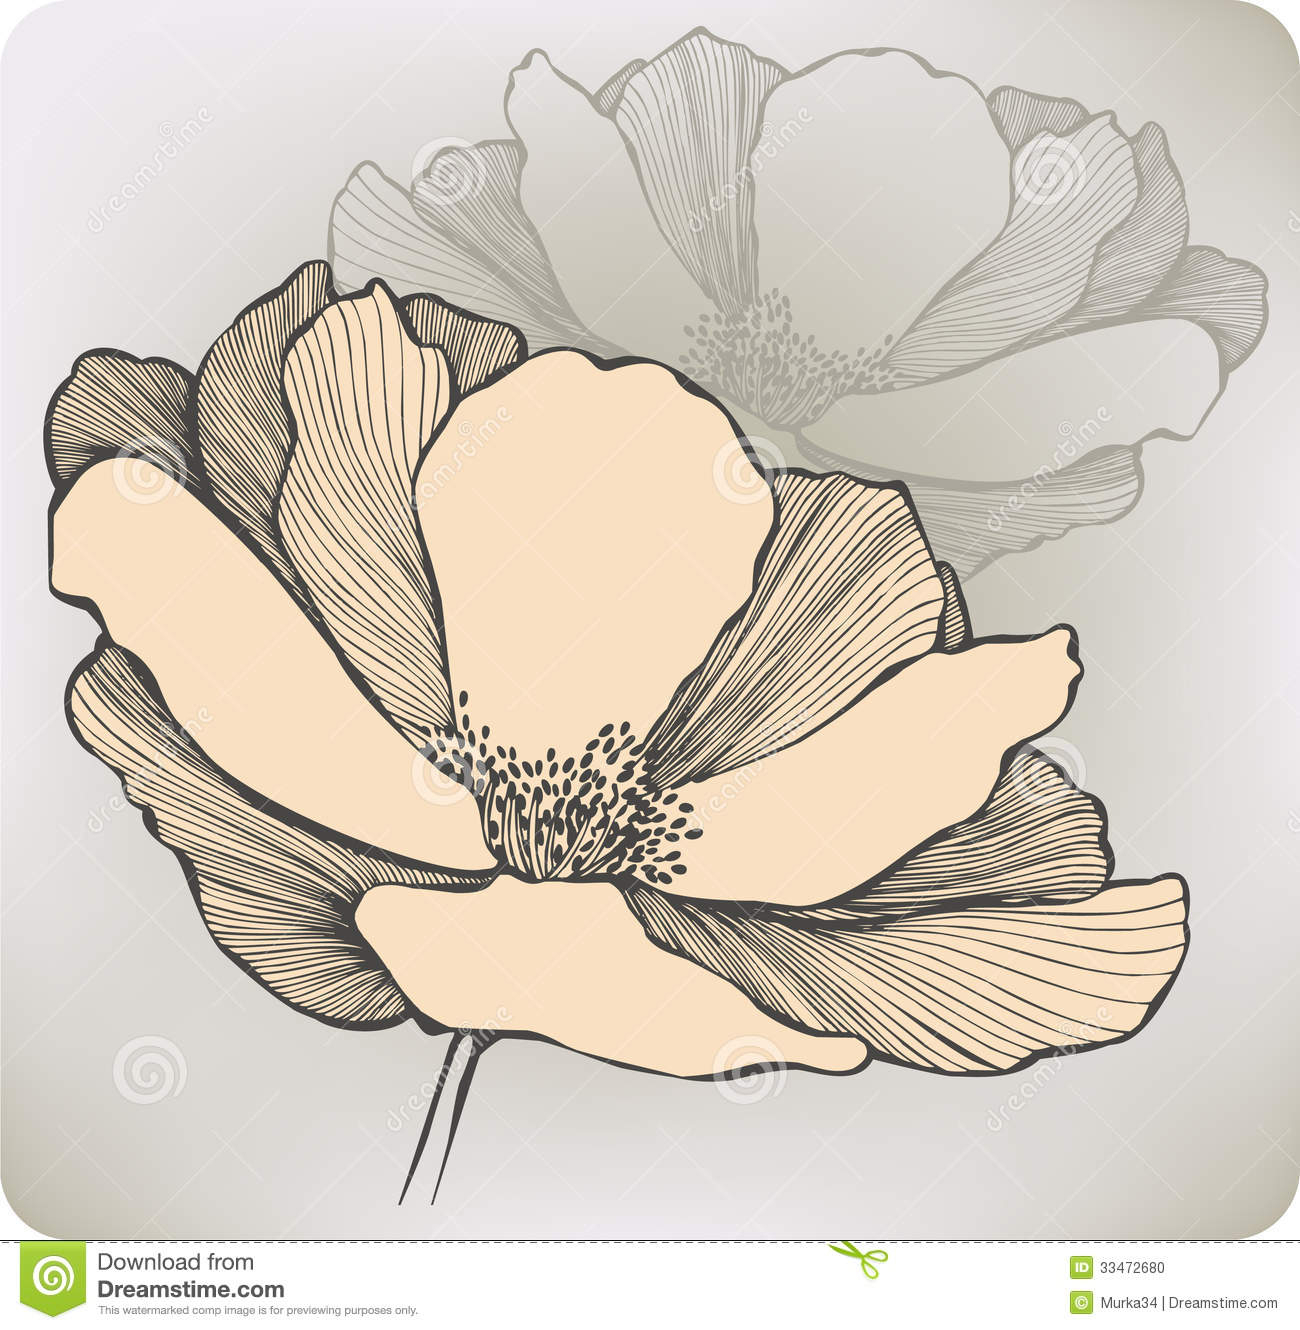 1300x1330 Abstract Flower Drawings Abstract Flower, Hand Drawing. Vector